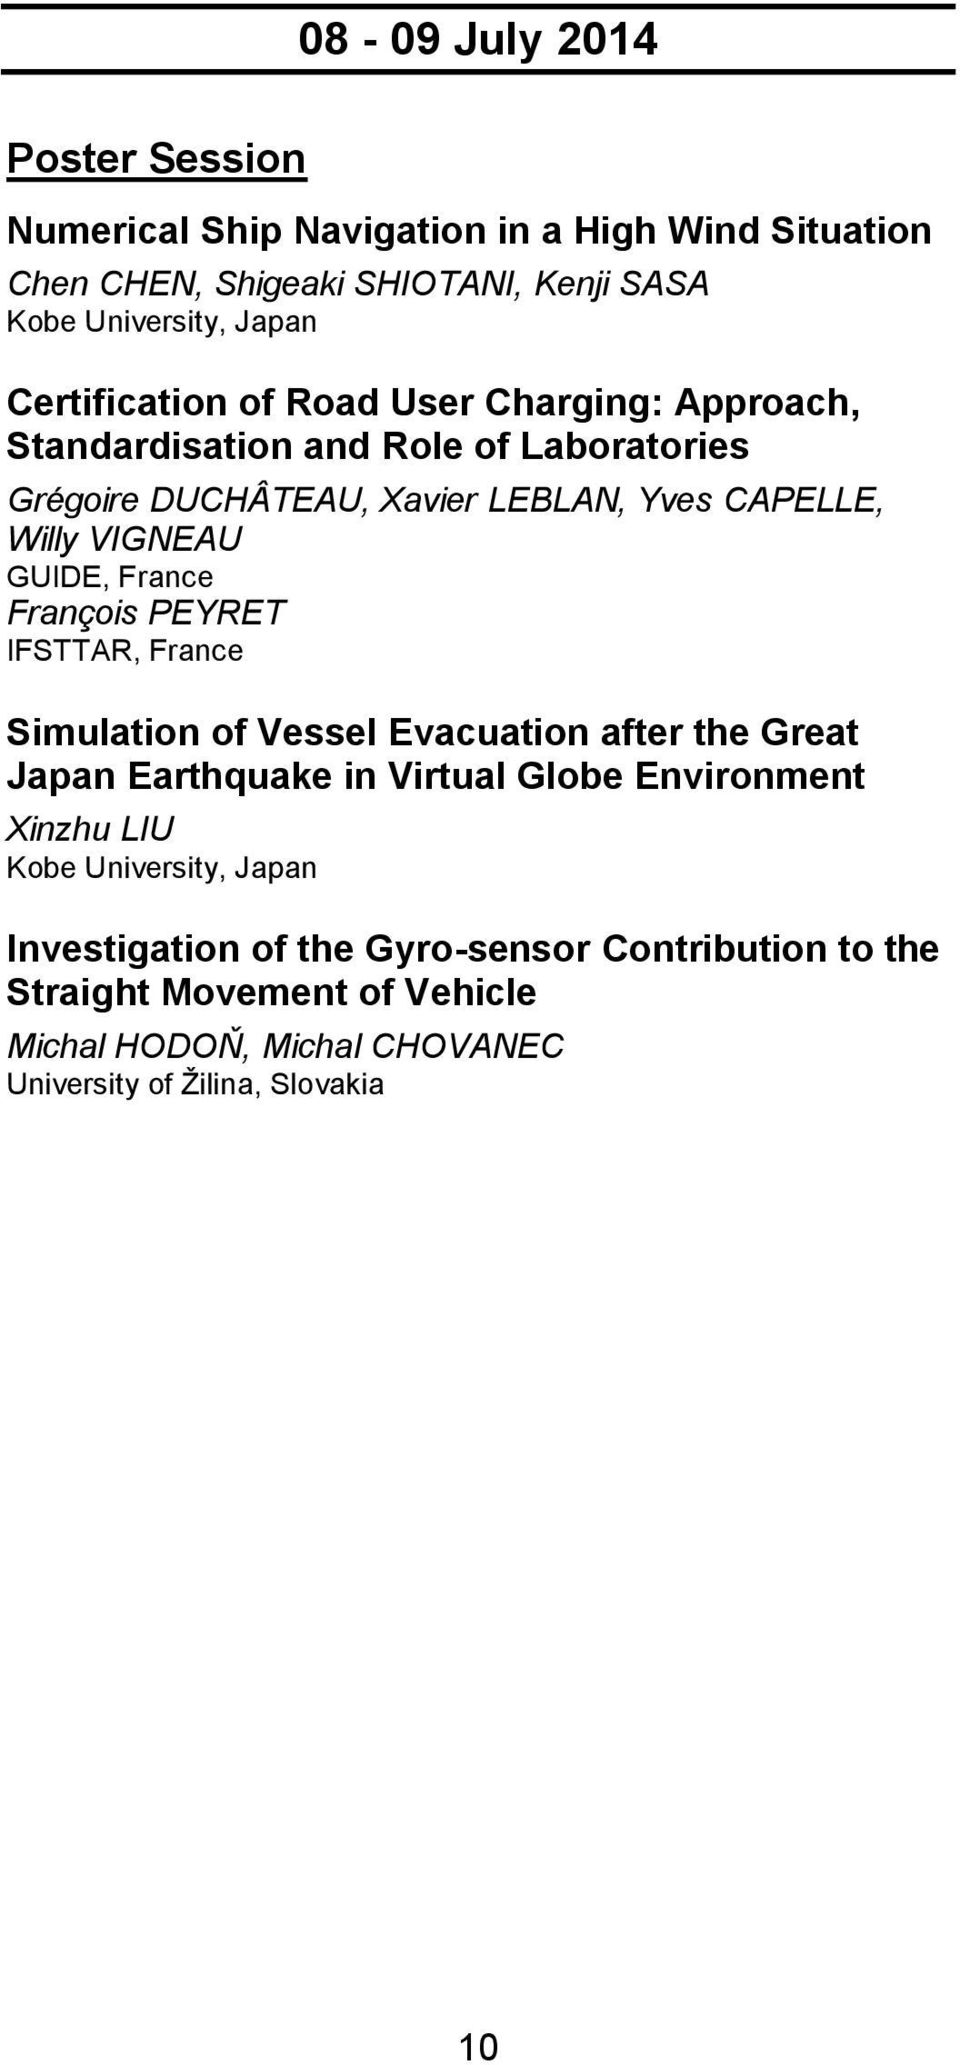 GUIDE, France François PEYRET IFSTTAR, France Simulation of Vessel Evacuation after the Great Japan Earthquake in Virtual Globe Environment Xinzhu LIU